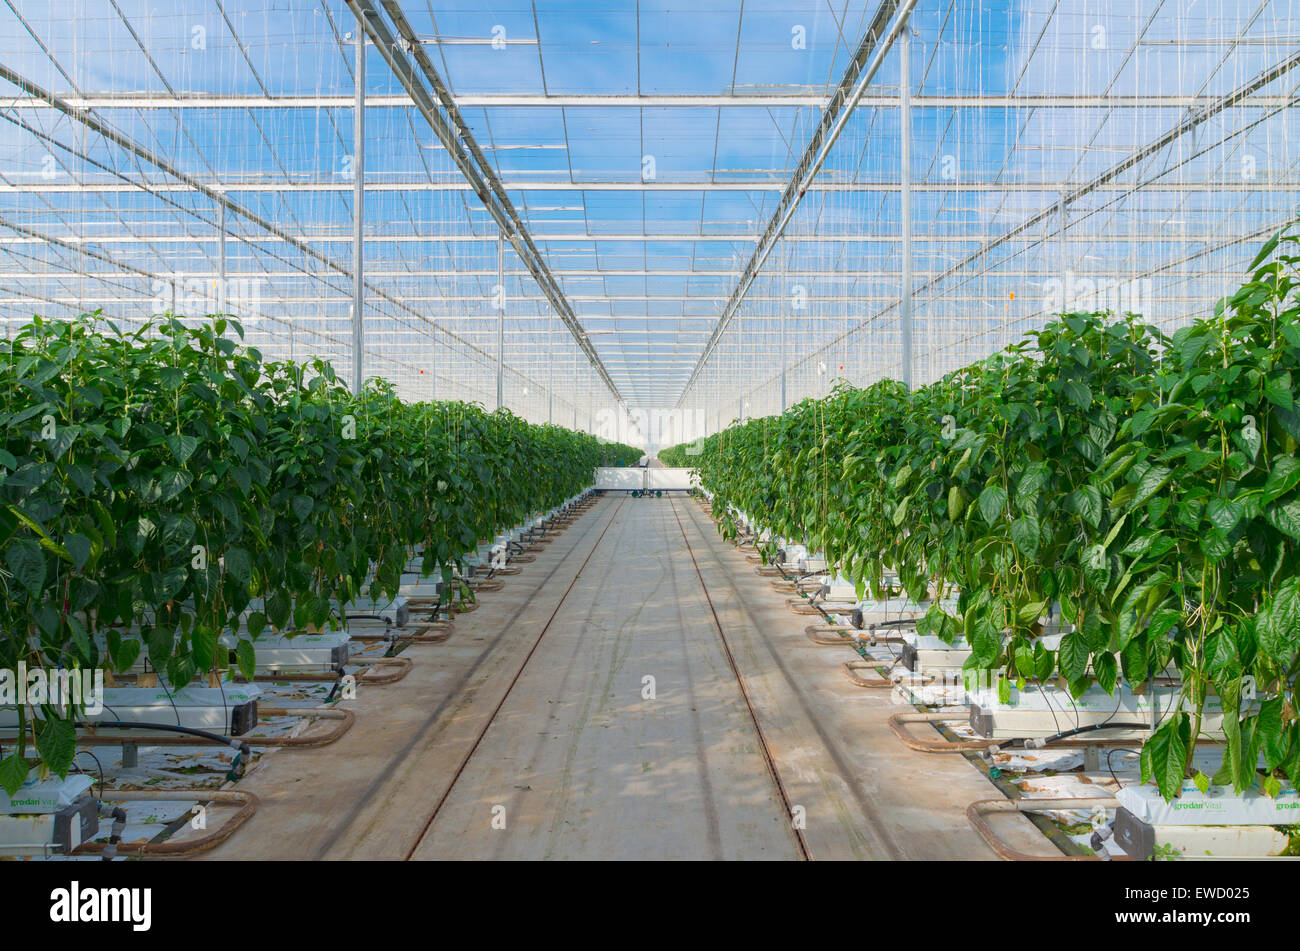 cultivation of green bell peppers in a commercial greenhouse in the stock photo royalty free. Black Bedroom Furniture Sets. Home Design Ideas